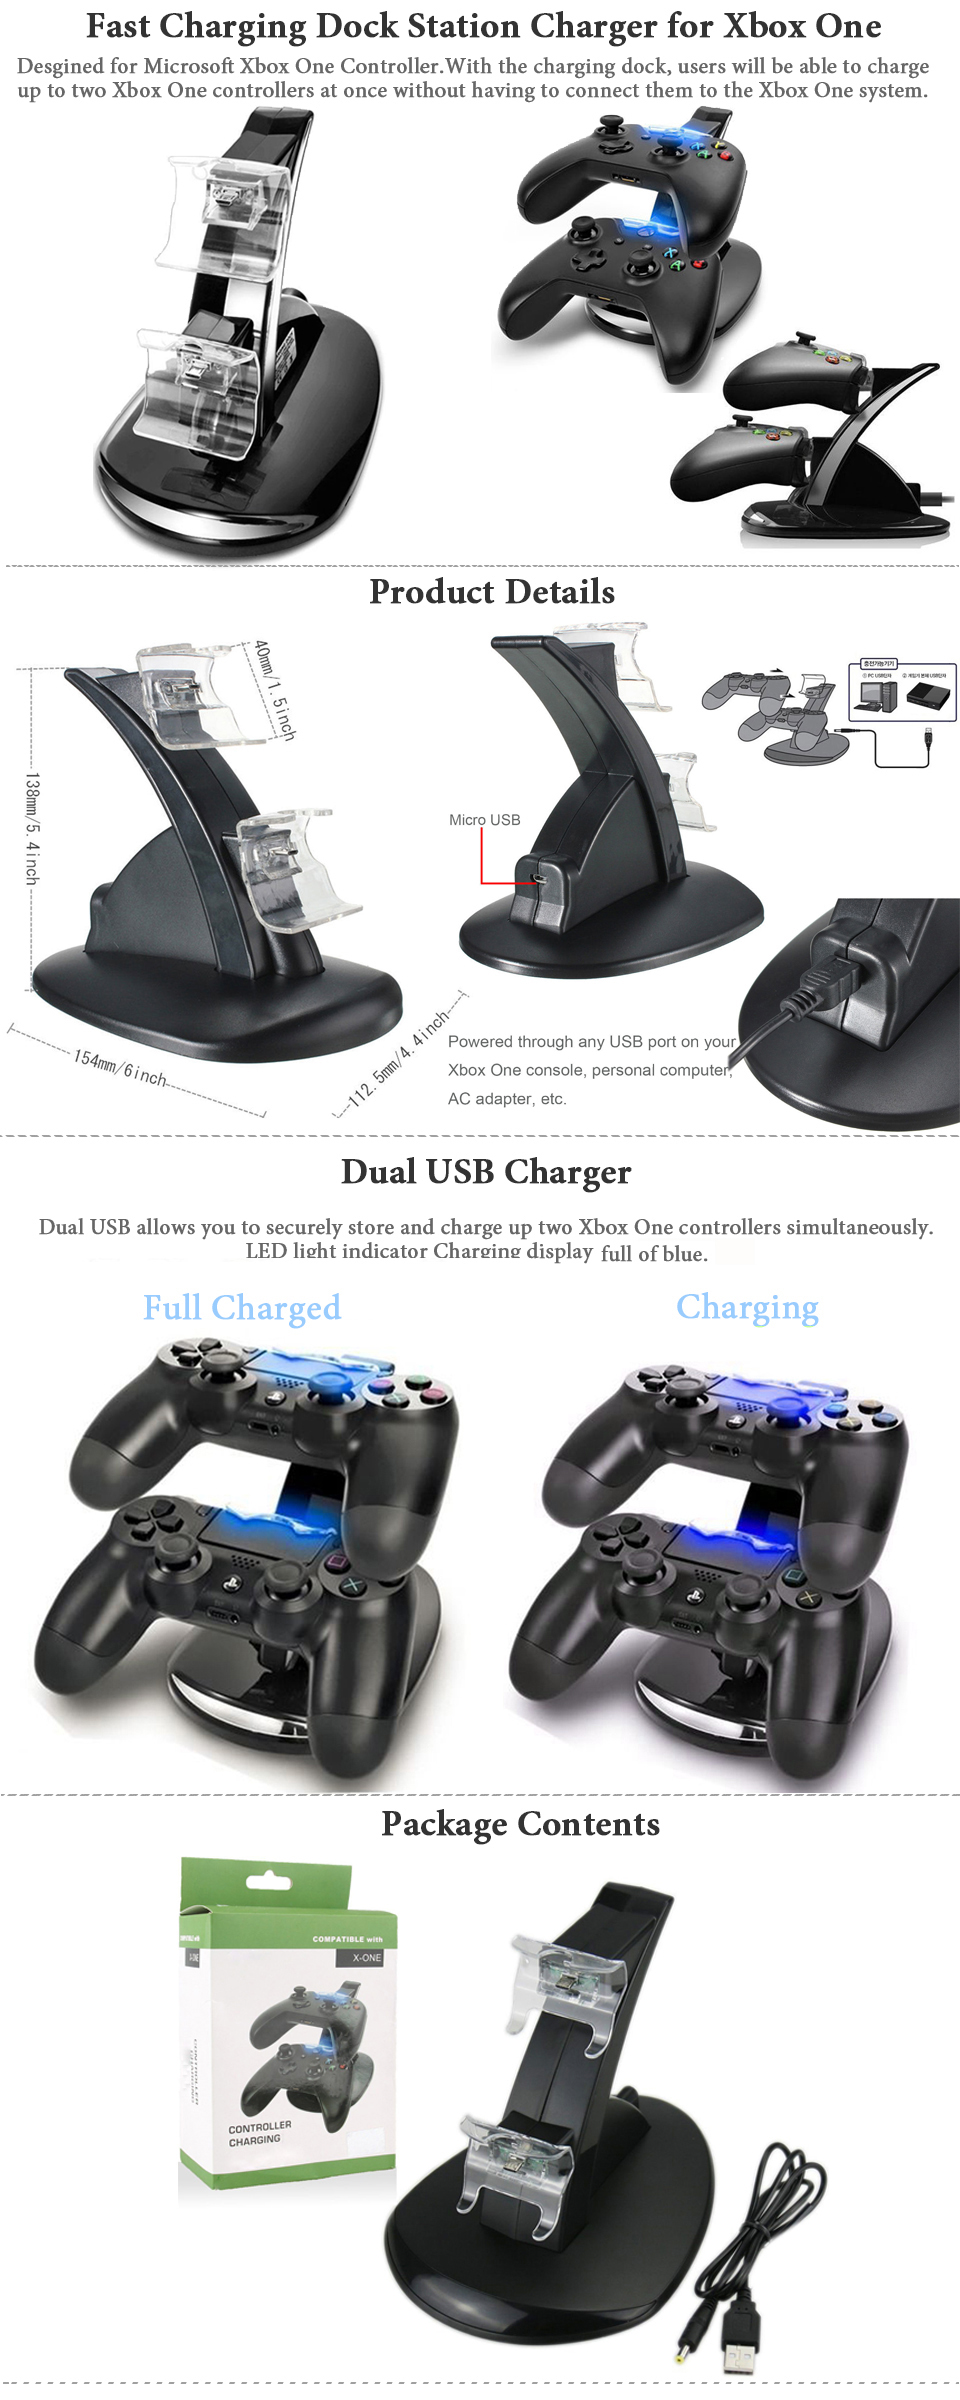 led dual fast charging dock station charger for xbox one    xbox one s controller